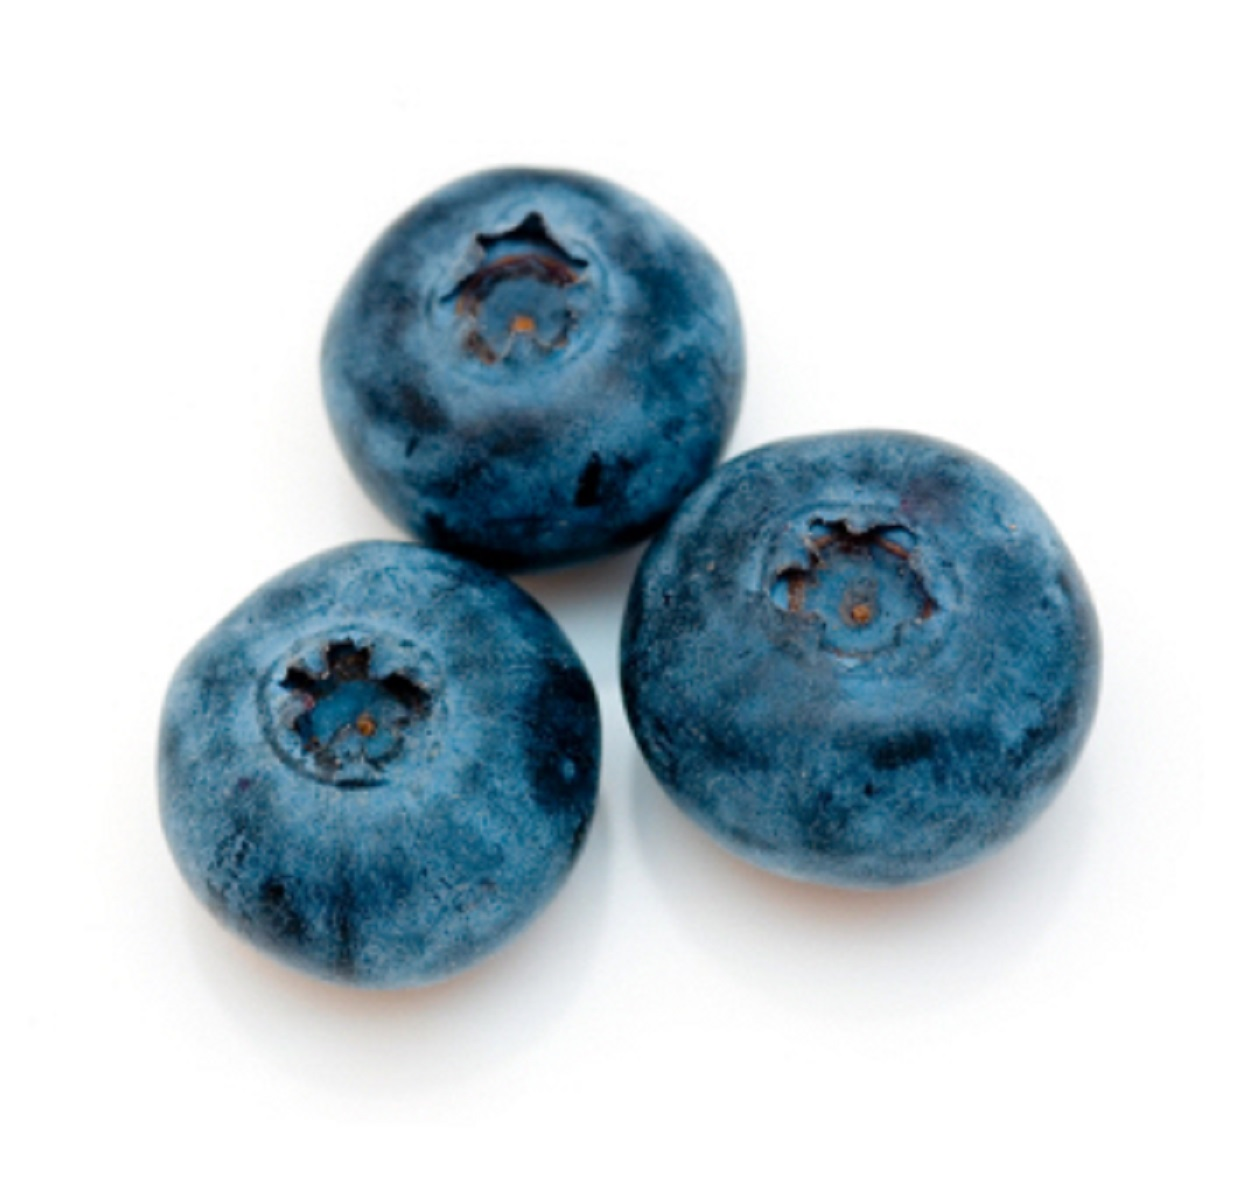 Organic Blueberry, 4.4oz.